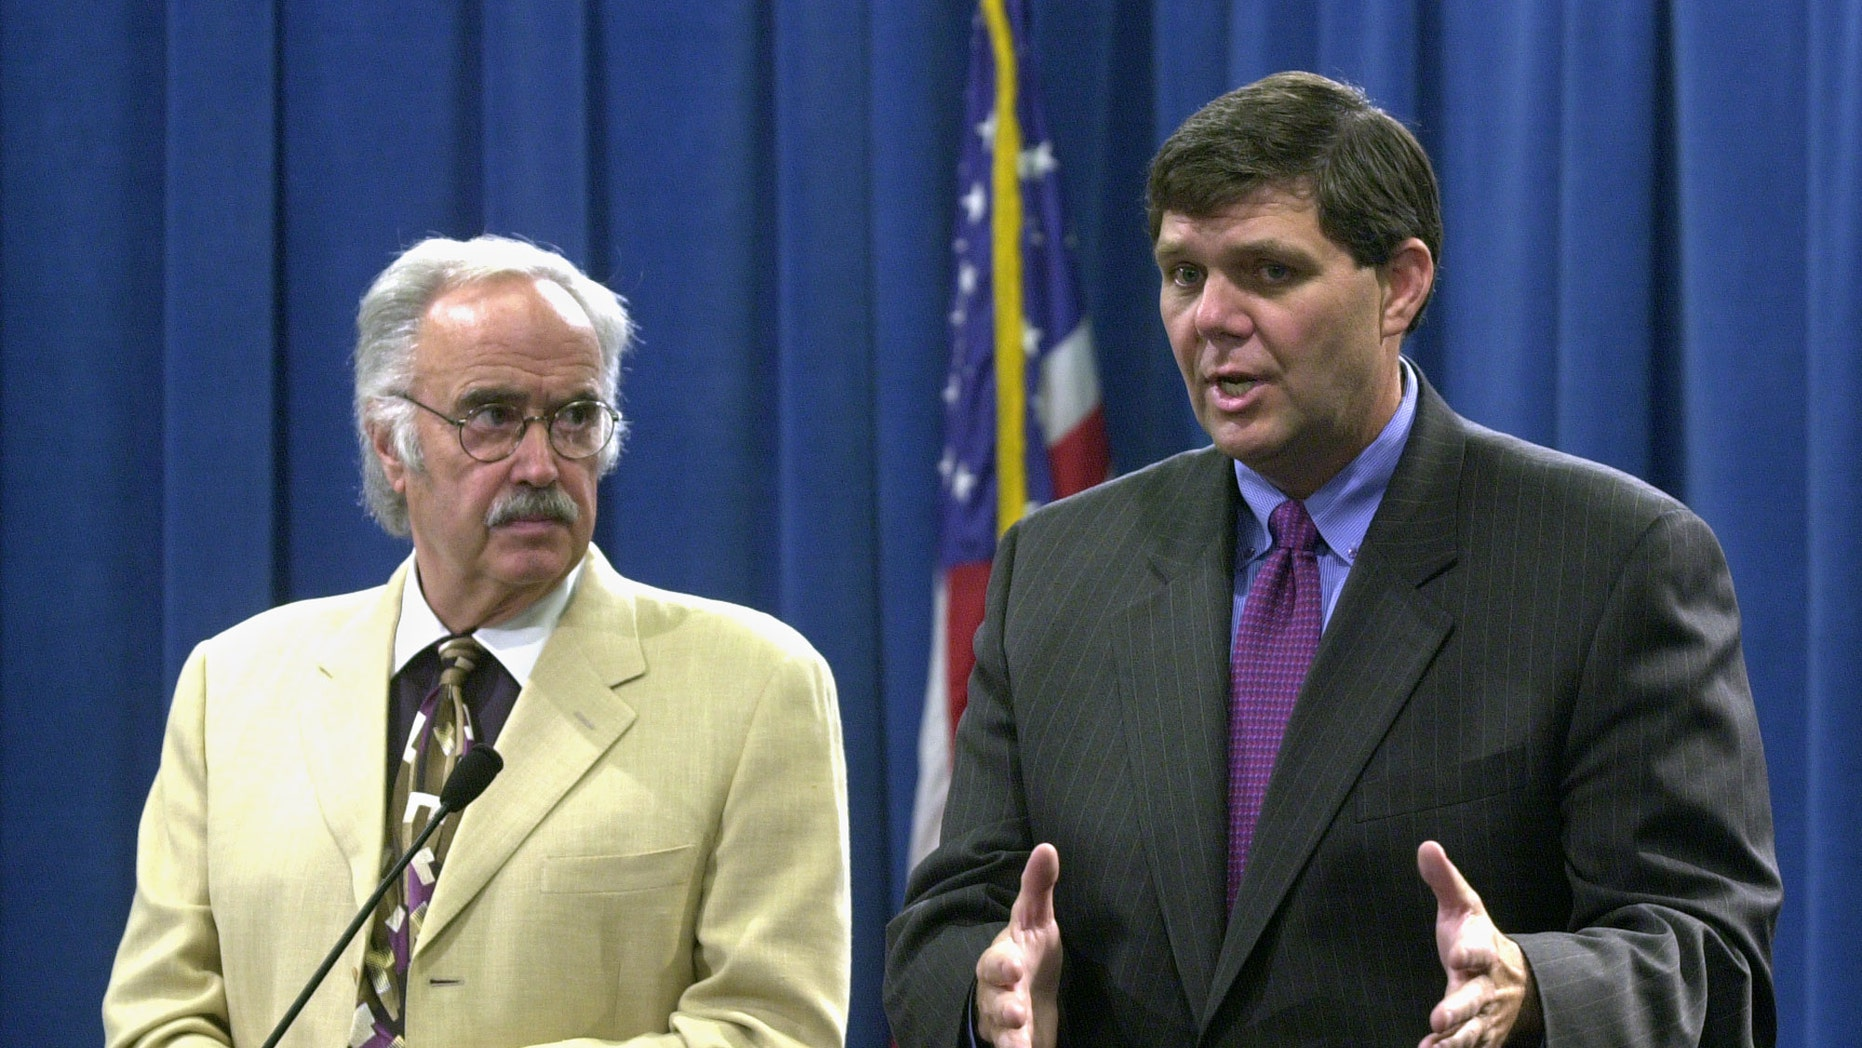 In this July 24, 2003 file photo, then State Sen. Minority Leader Jim Brutle, right, speaks next to then Senate President Pro tem John Burton, D-San Francisco, left, during a Capitol news conference in Sacramento, Calif.